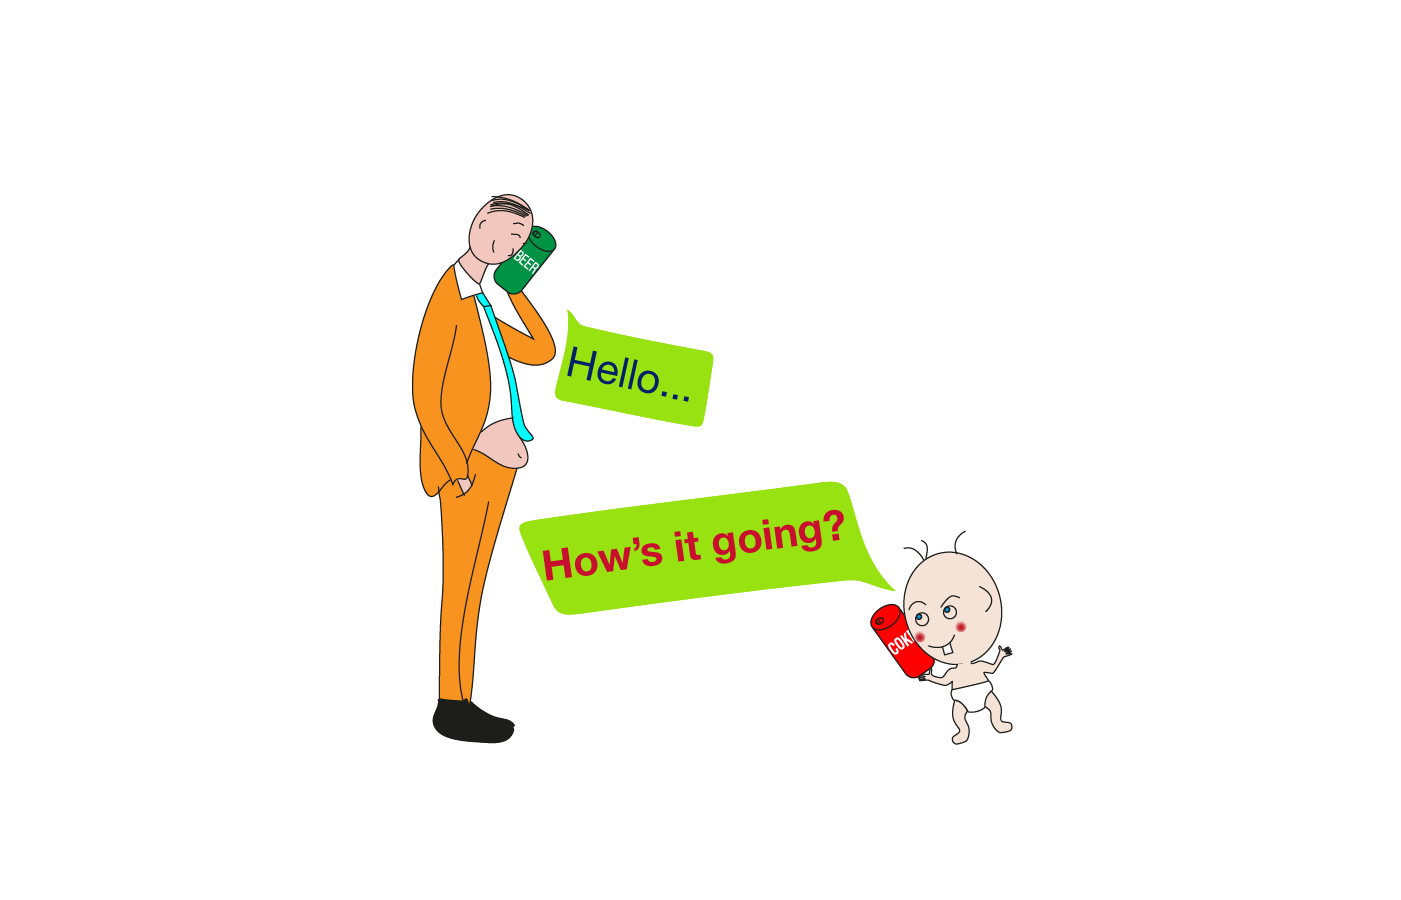 how's it going (greeting) idiom meaning